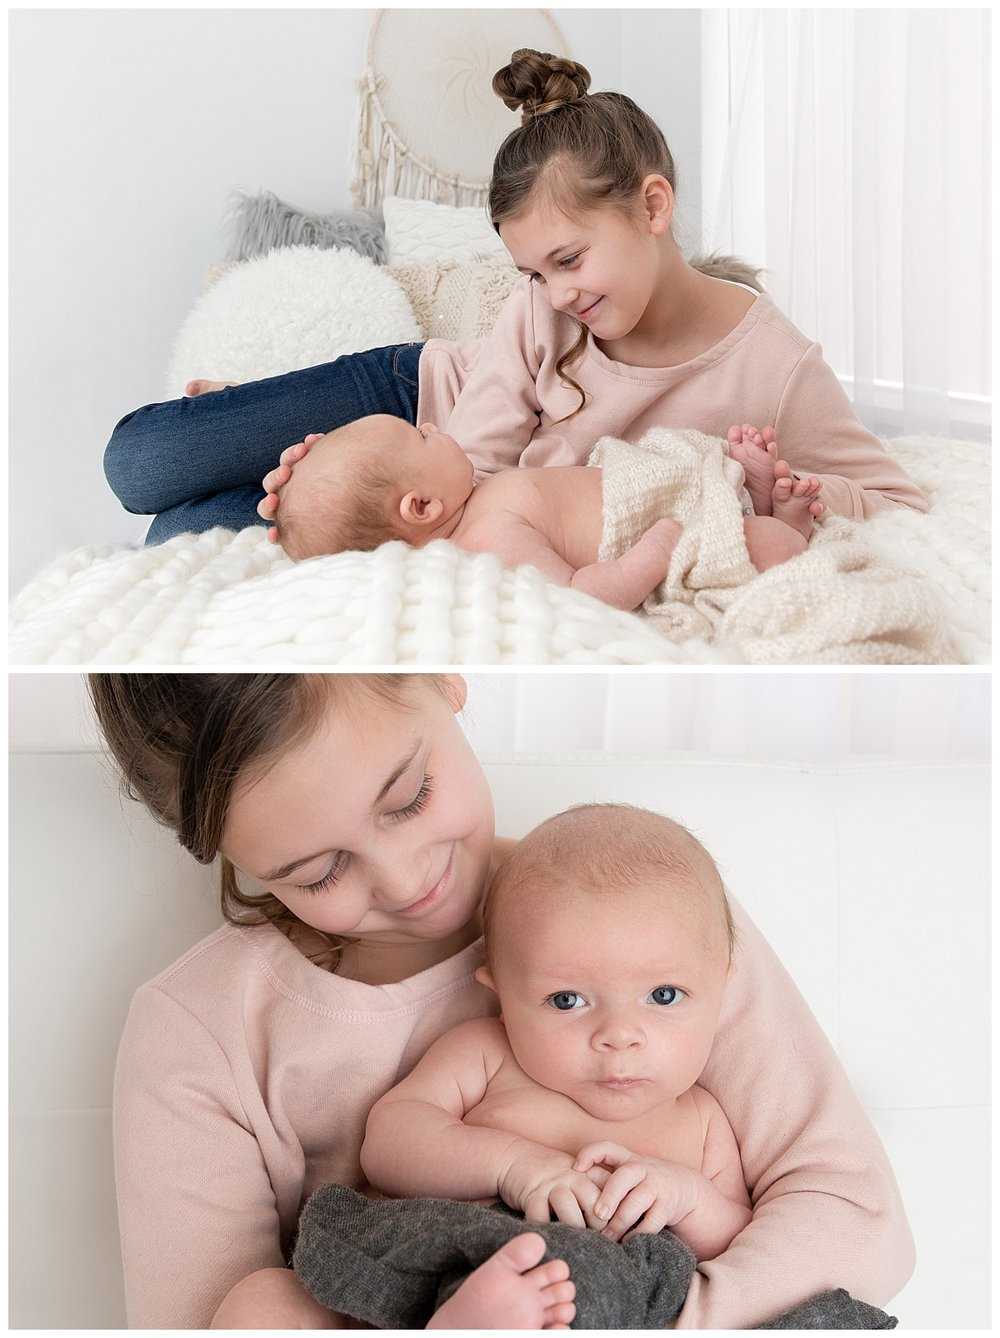 st-louis-newborn-photographer-baby-boy-with-big-sister-collage.jpg